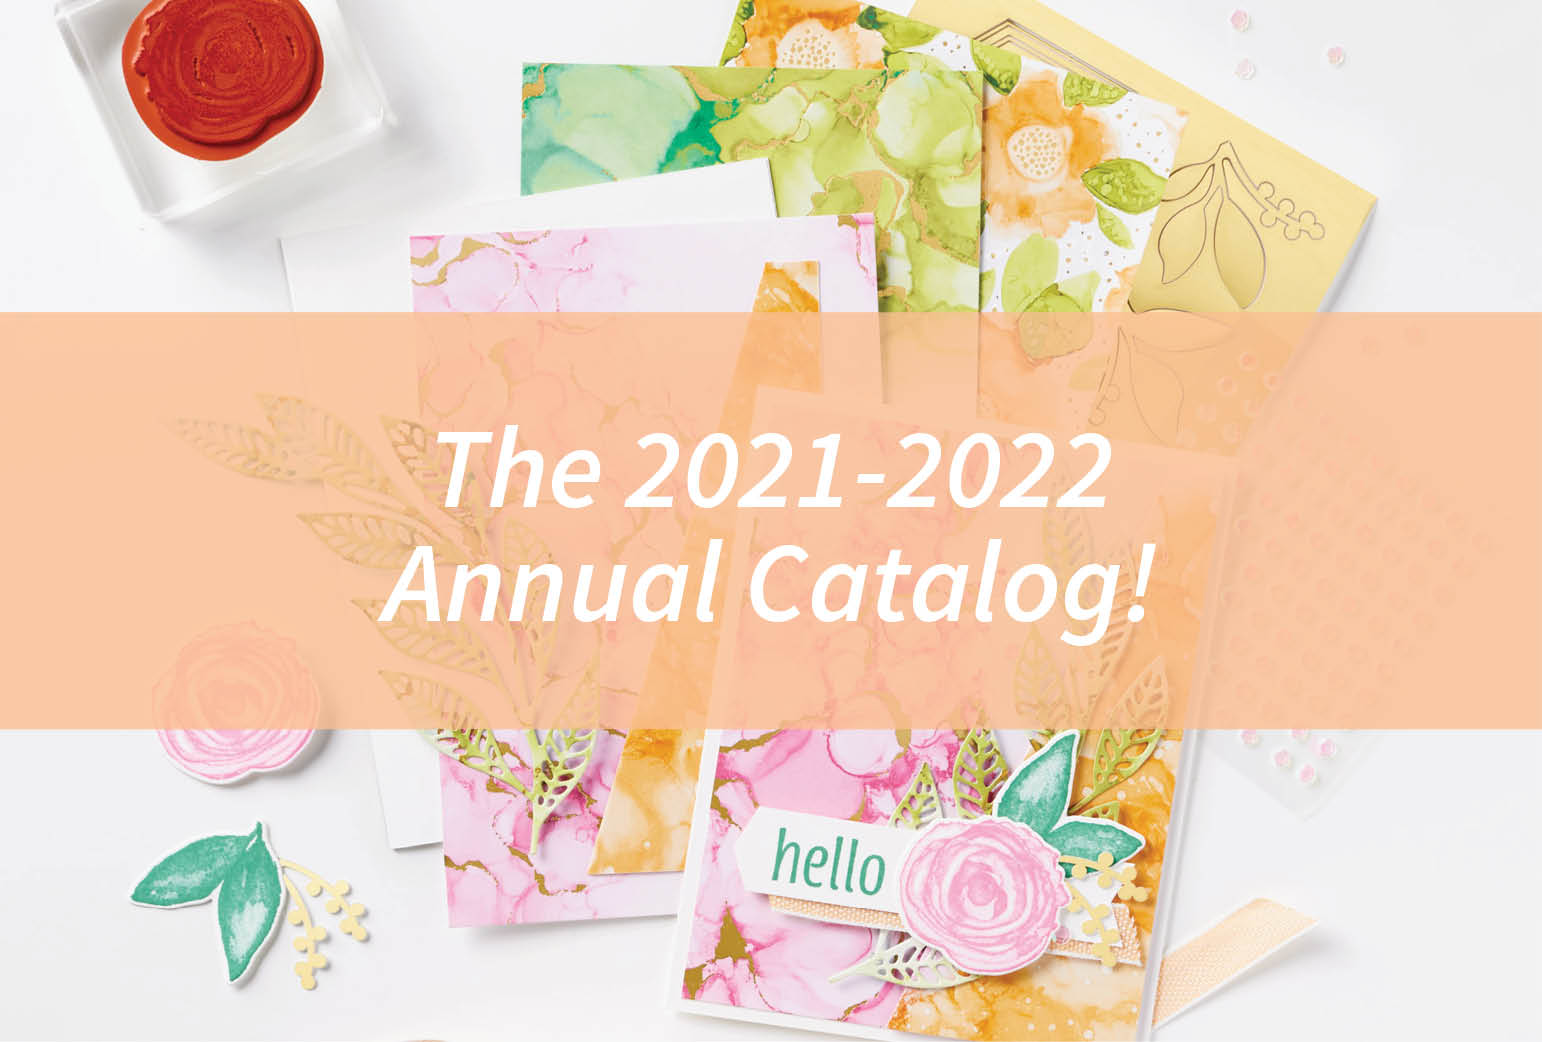 The 2021-2022 Annual Catalog!